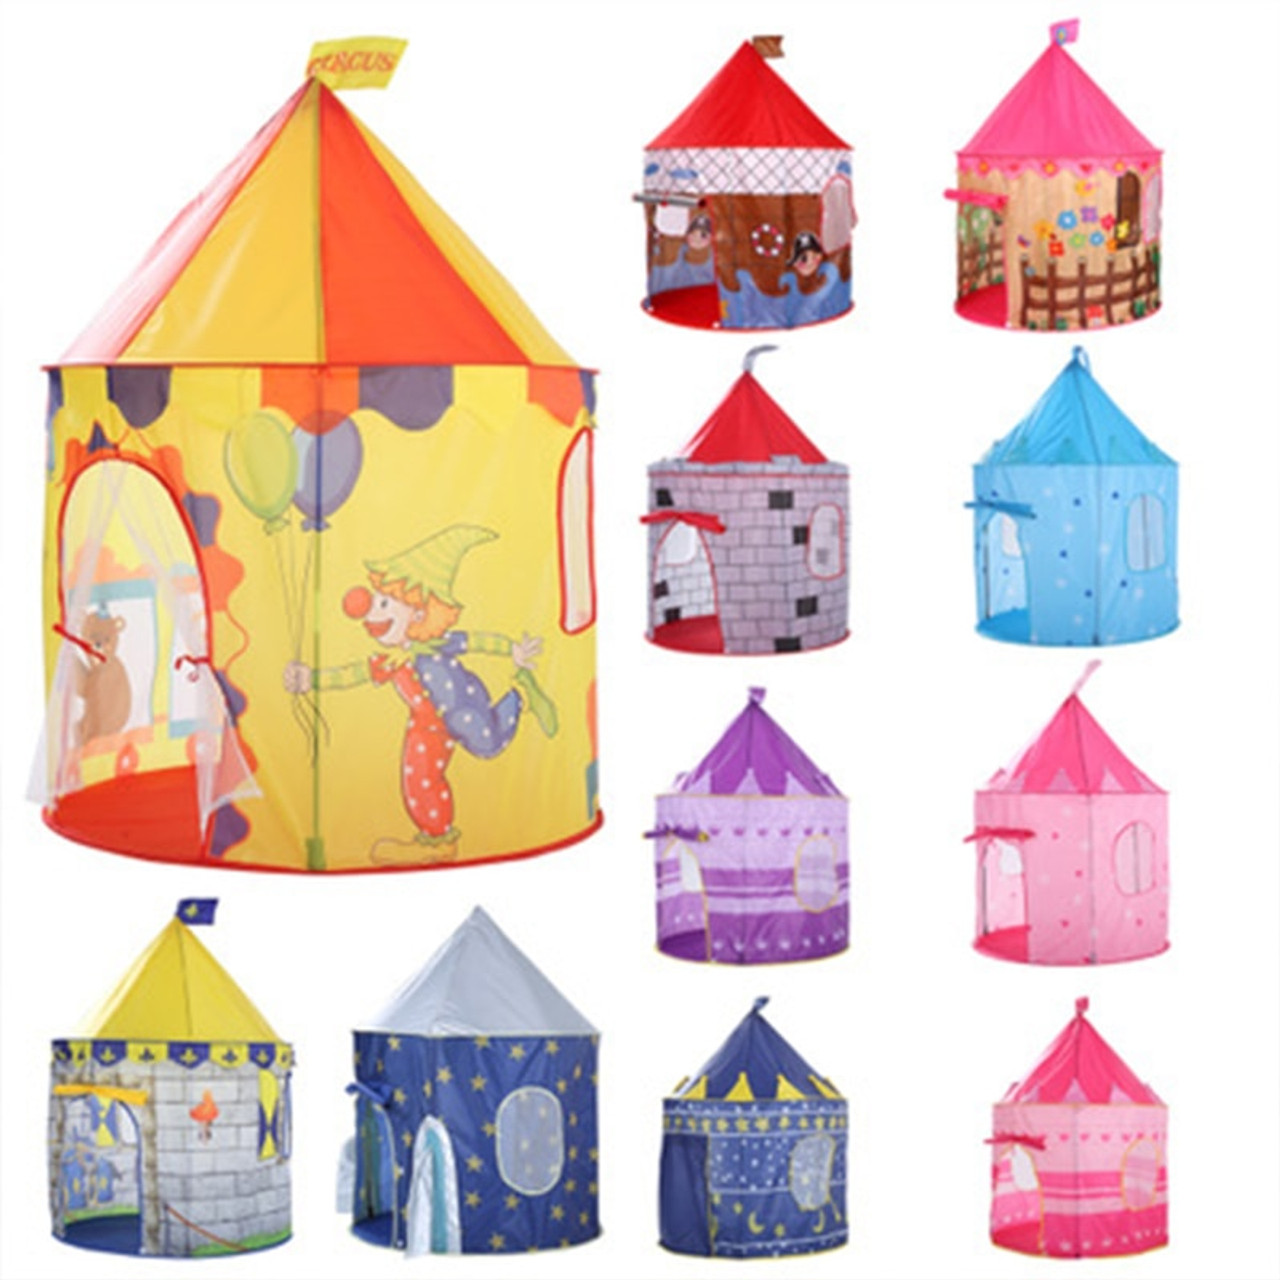 ... Tent Baby Toys For Children Ball Pool Castle Tents Ball Pool Child Tent Ball Pit Play ...  sc 1 st  OnshopDeals.Com & Tent Baby Toys For Children Ball Pool Castle Tents Ball Pool Child ...